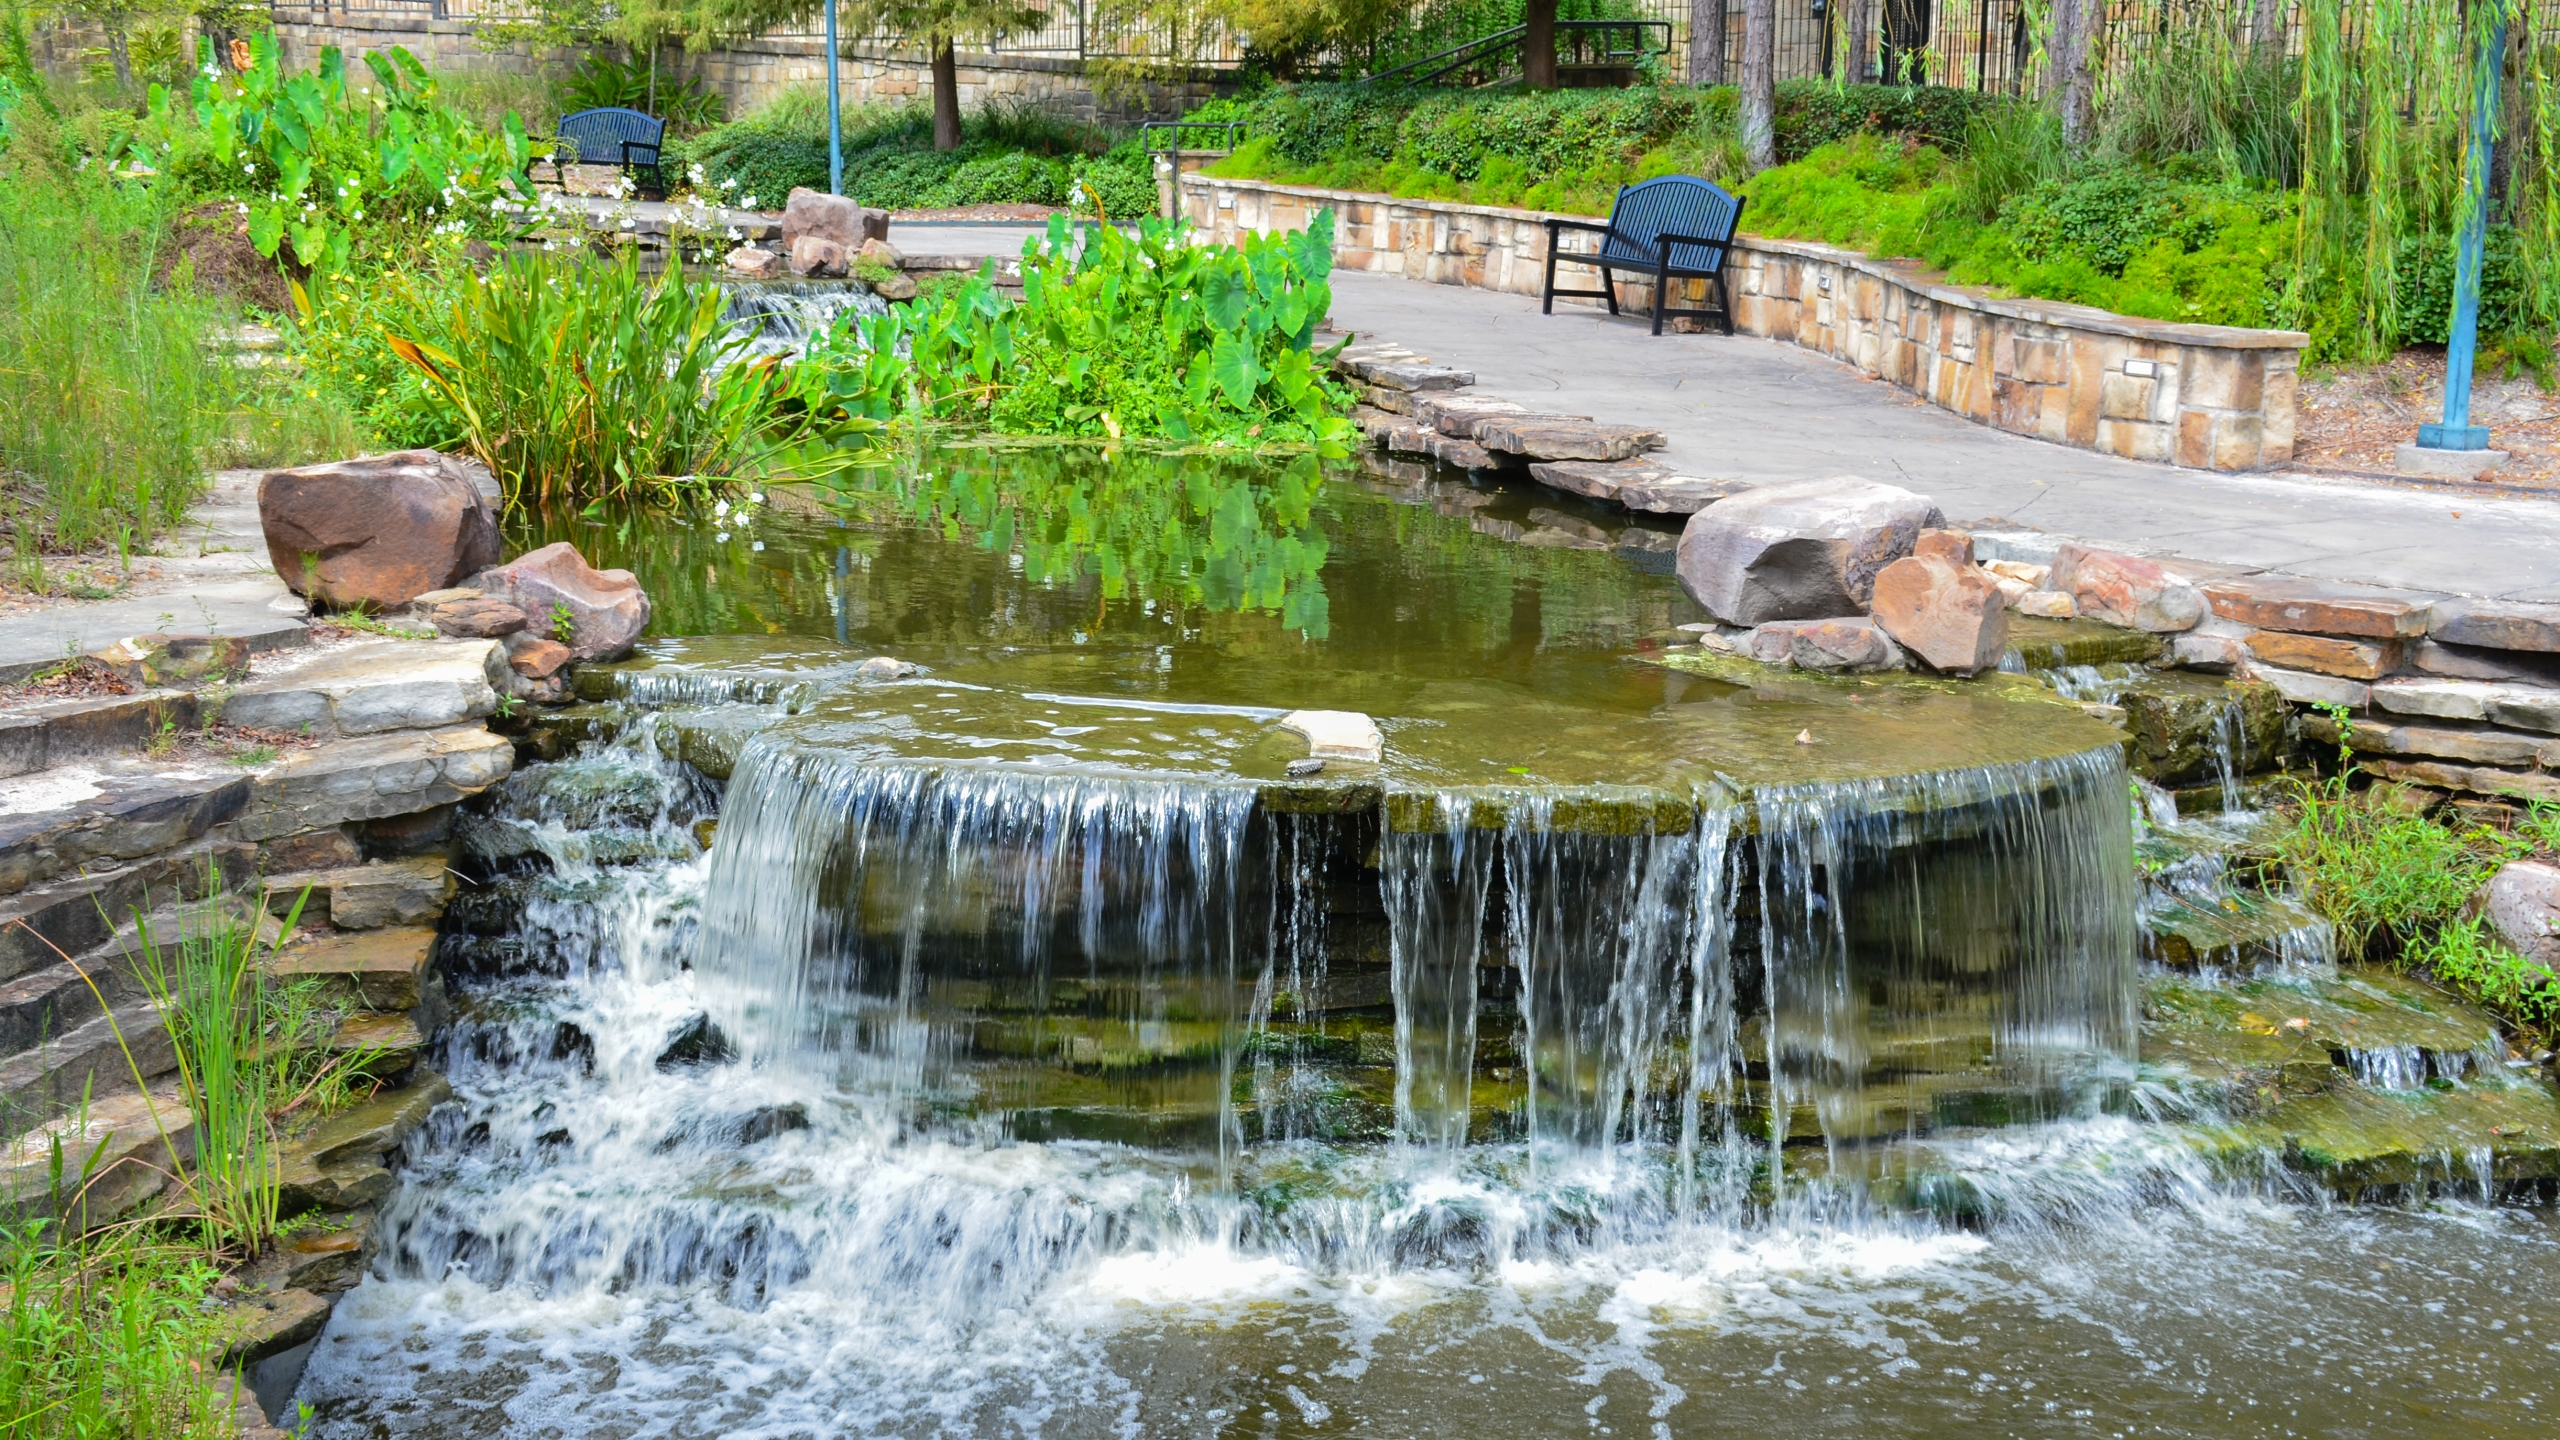 Lake Woodlands Waterway at The Woodlands, Texas, USA. August 2020